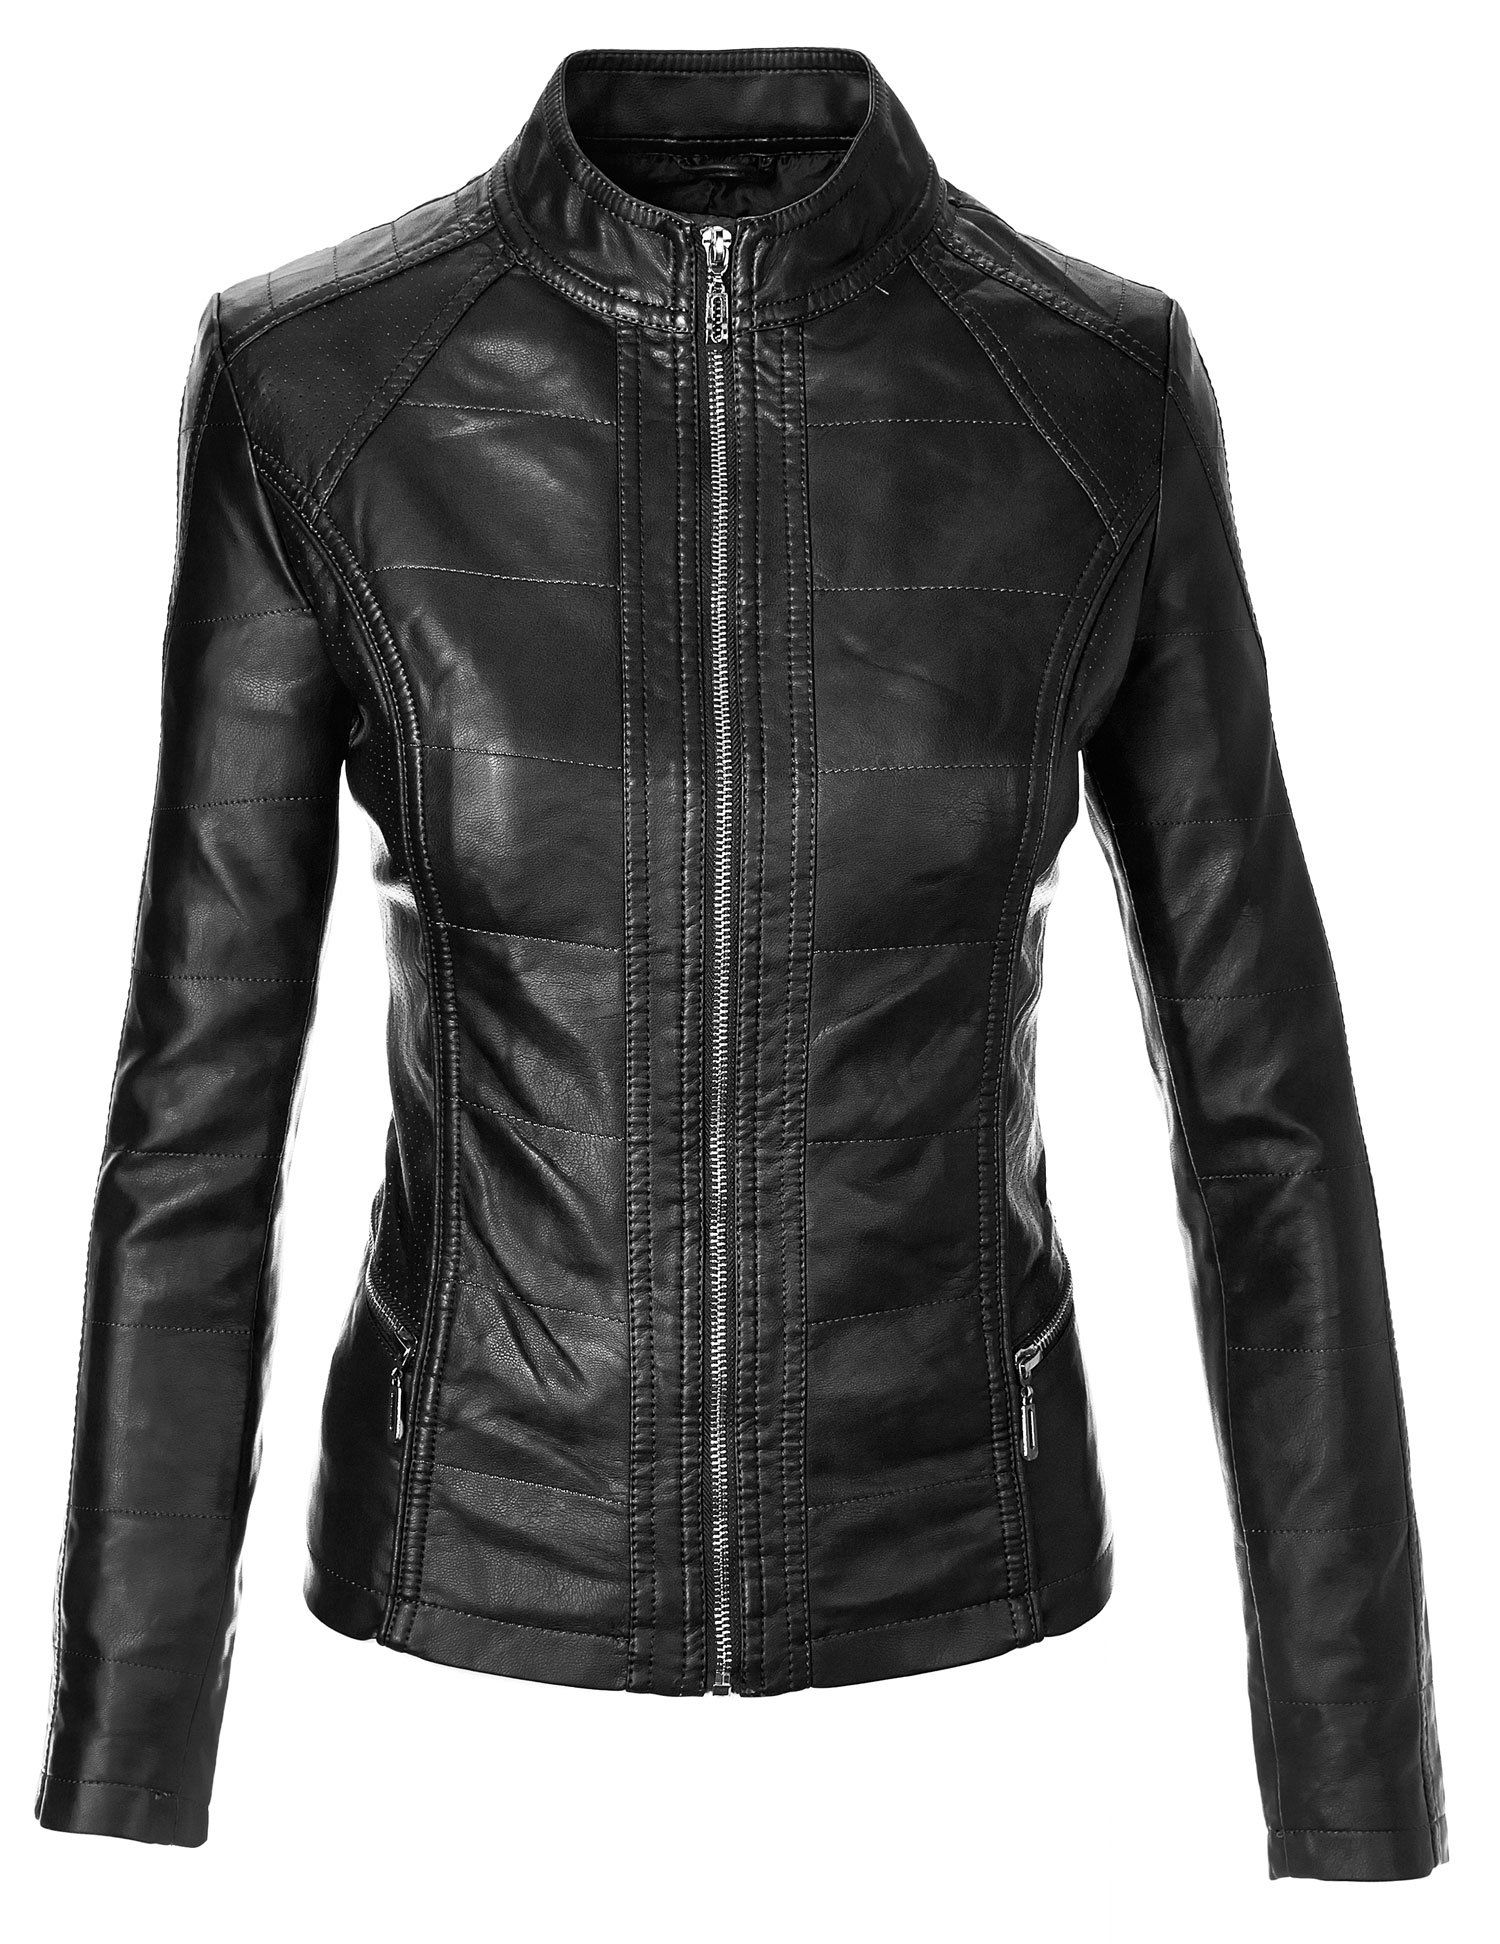 Made By Johnny Women's Biker Chic Faux Leather Jacket